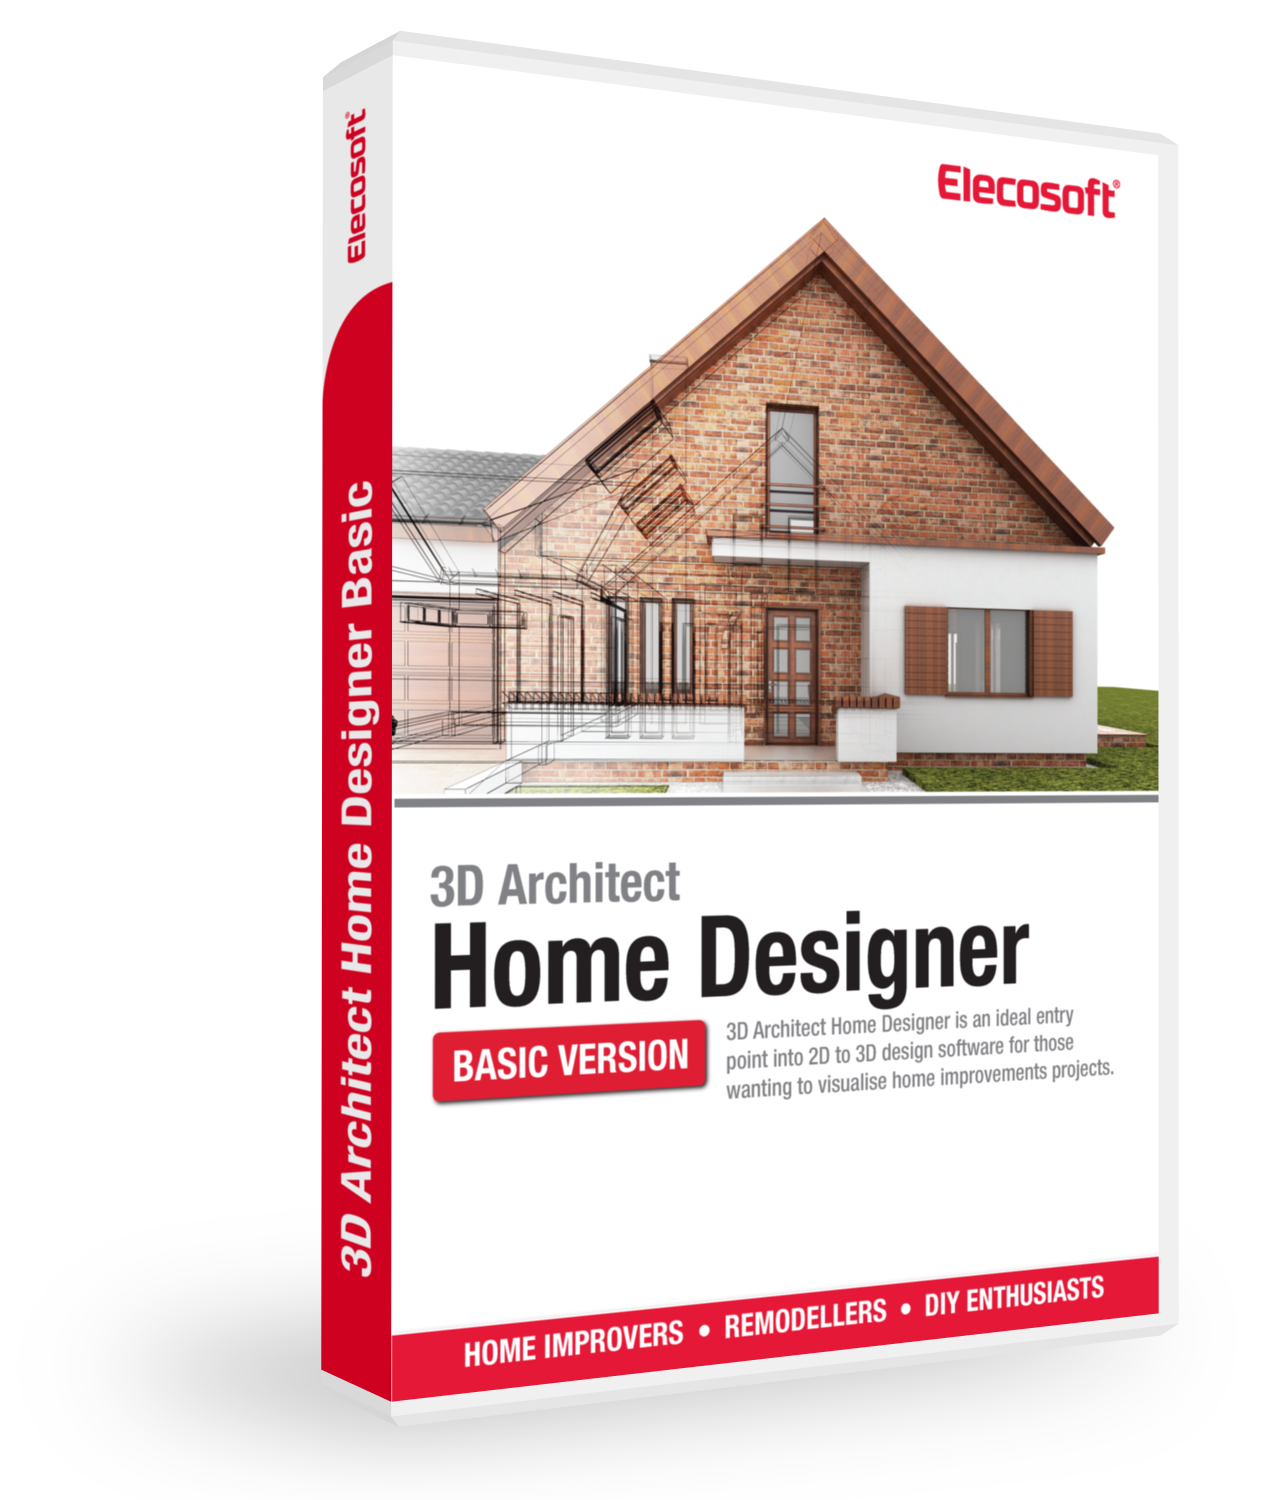 3d floor plan software for diy home projects Design a home software